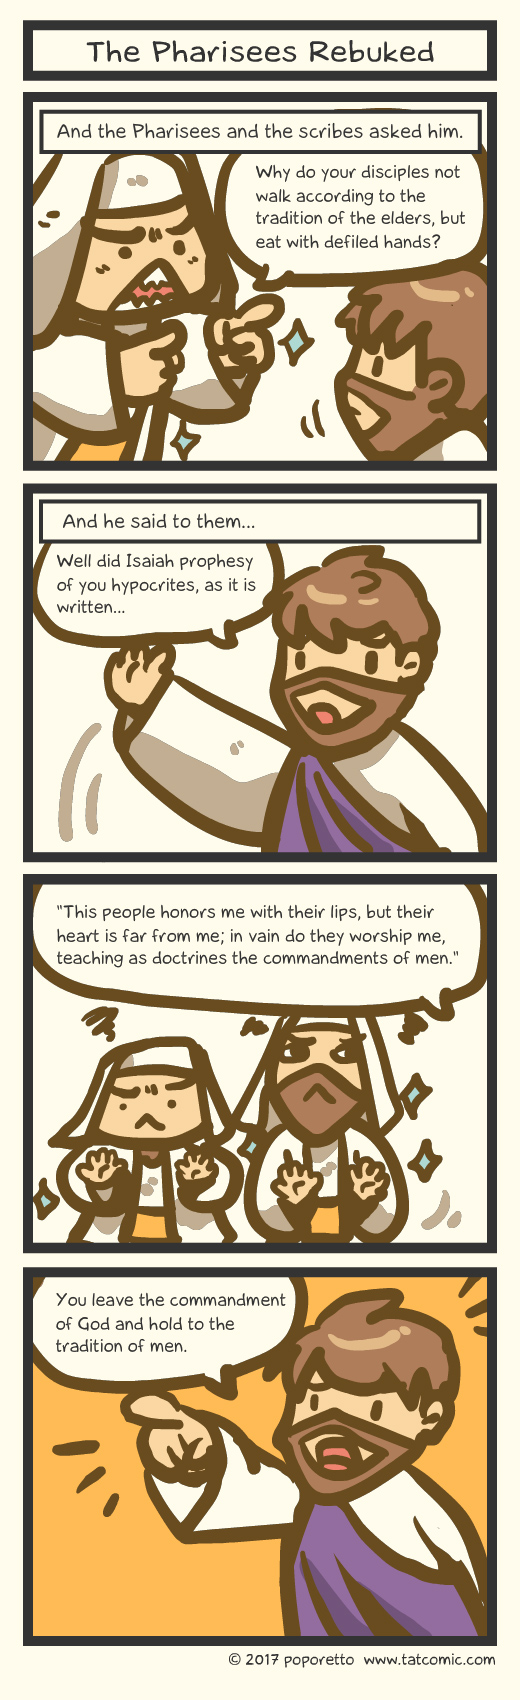 Book of Mark – Jesus Rebuked The Pharisees